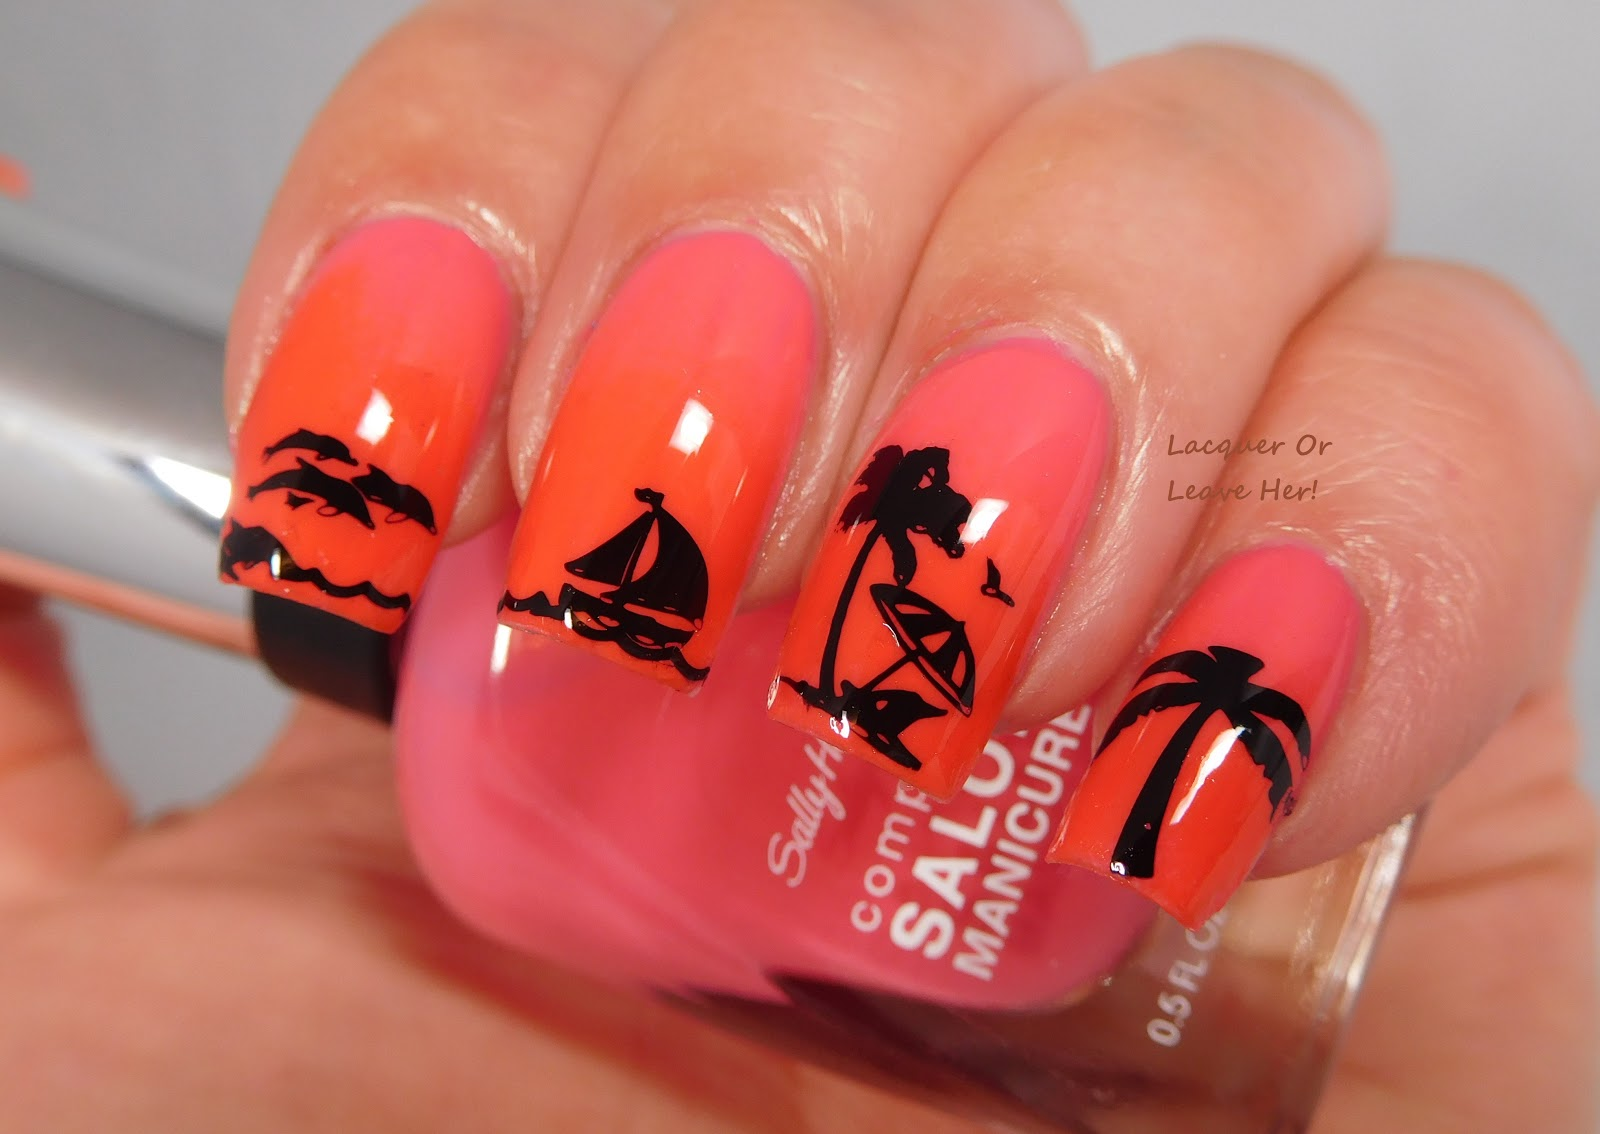 Lacquer or Leave Her!: Sally Hansen CoTM: Get Juiced & Kook a Mango